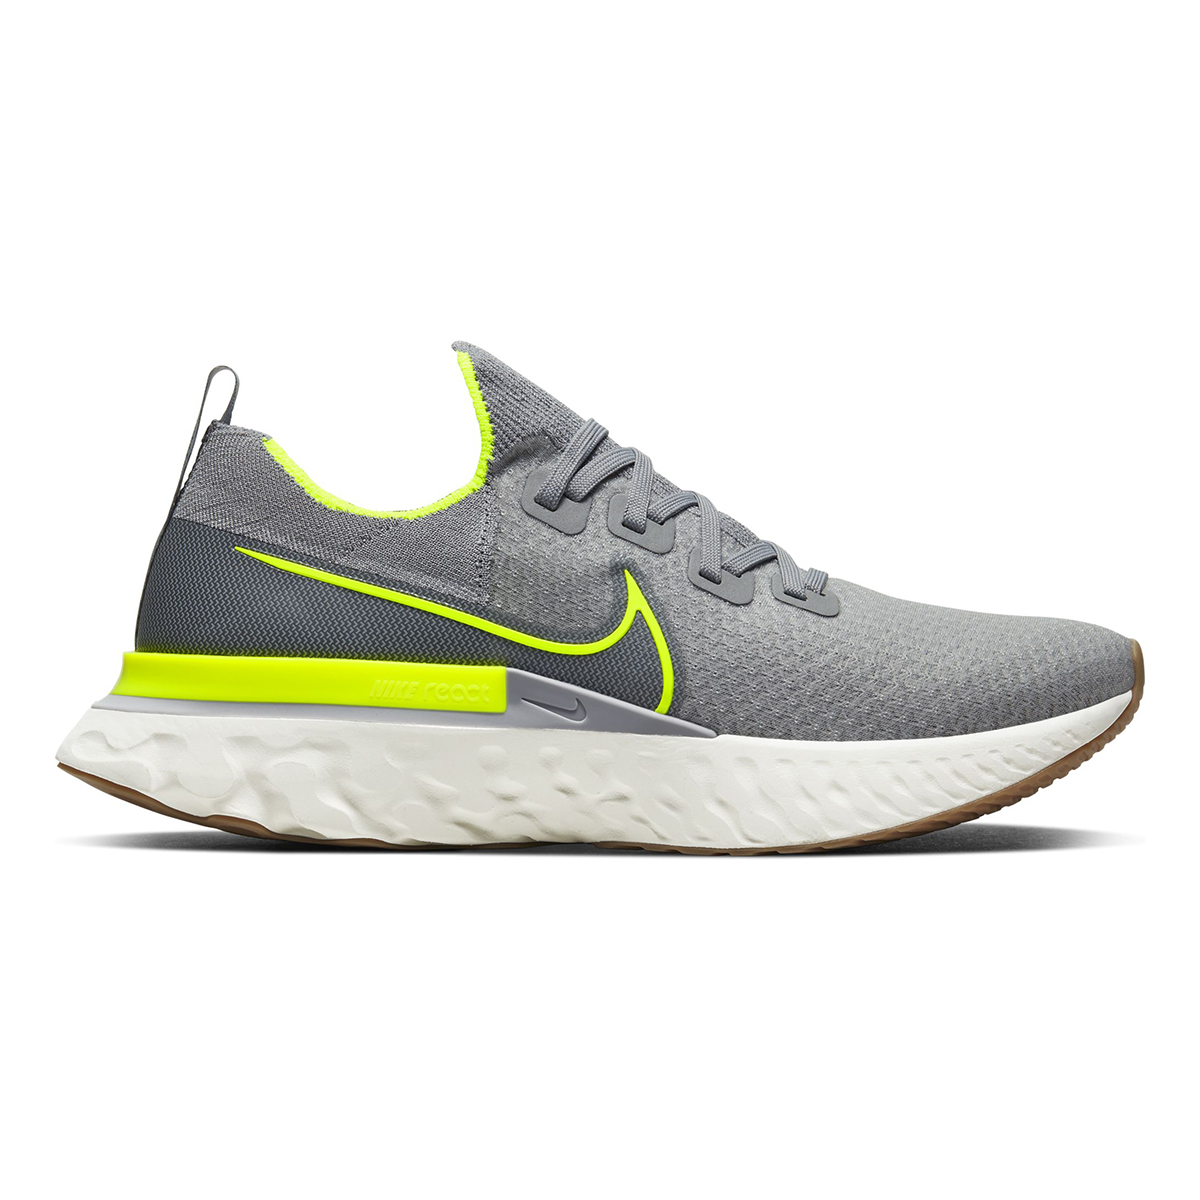 Men's Nike React Infinity Run Flyknit Running Shoe - Color: Particle Grey/Wolf Grey/Sail/Volt (Regular Width) - Size: 6, Particle Grey/Wolf Grey/Sail/Volt, large, image 1